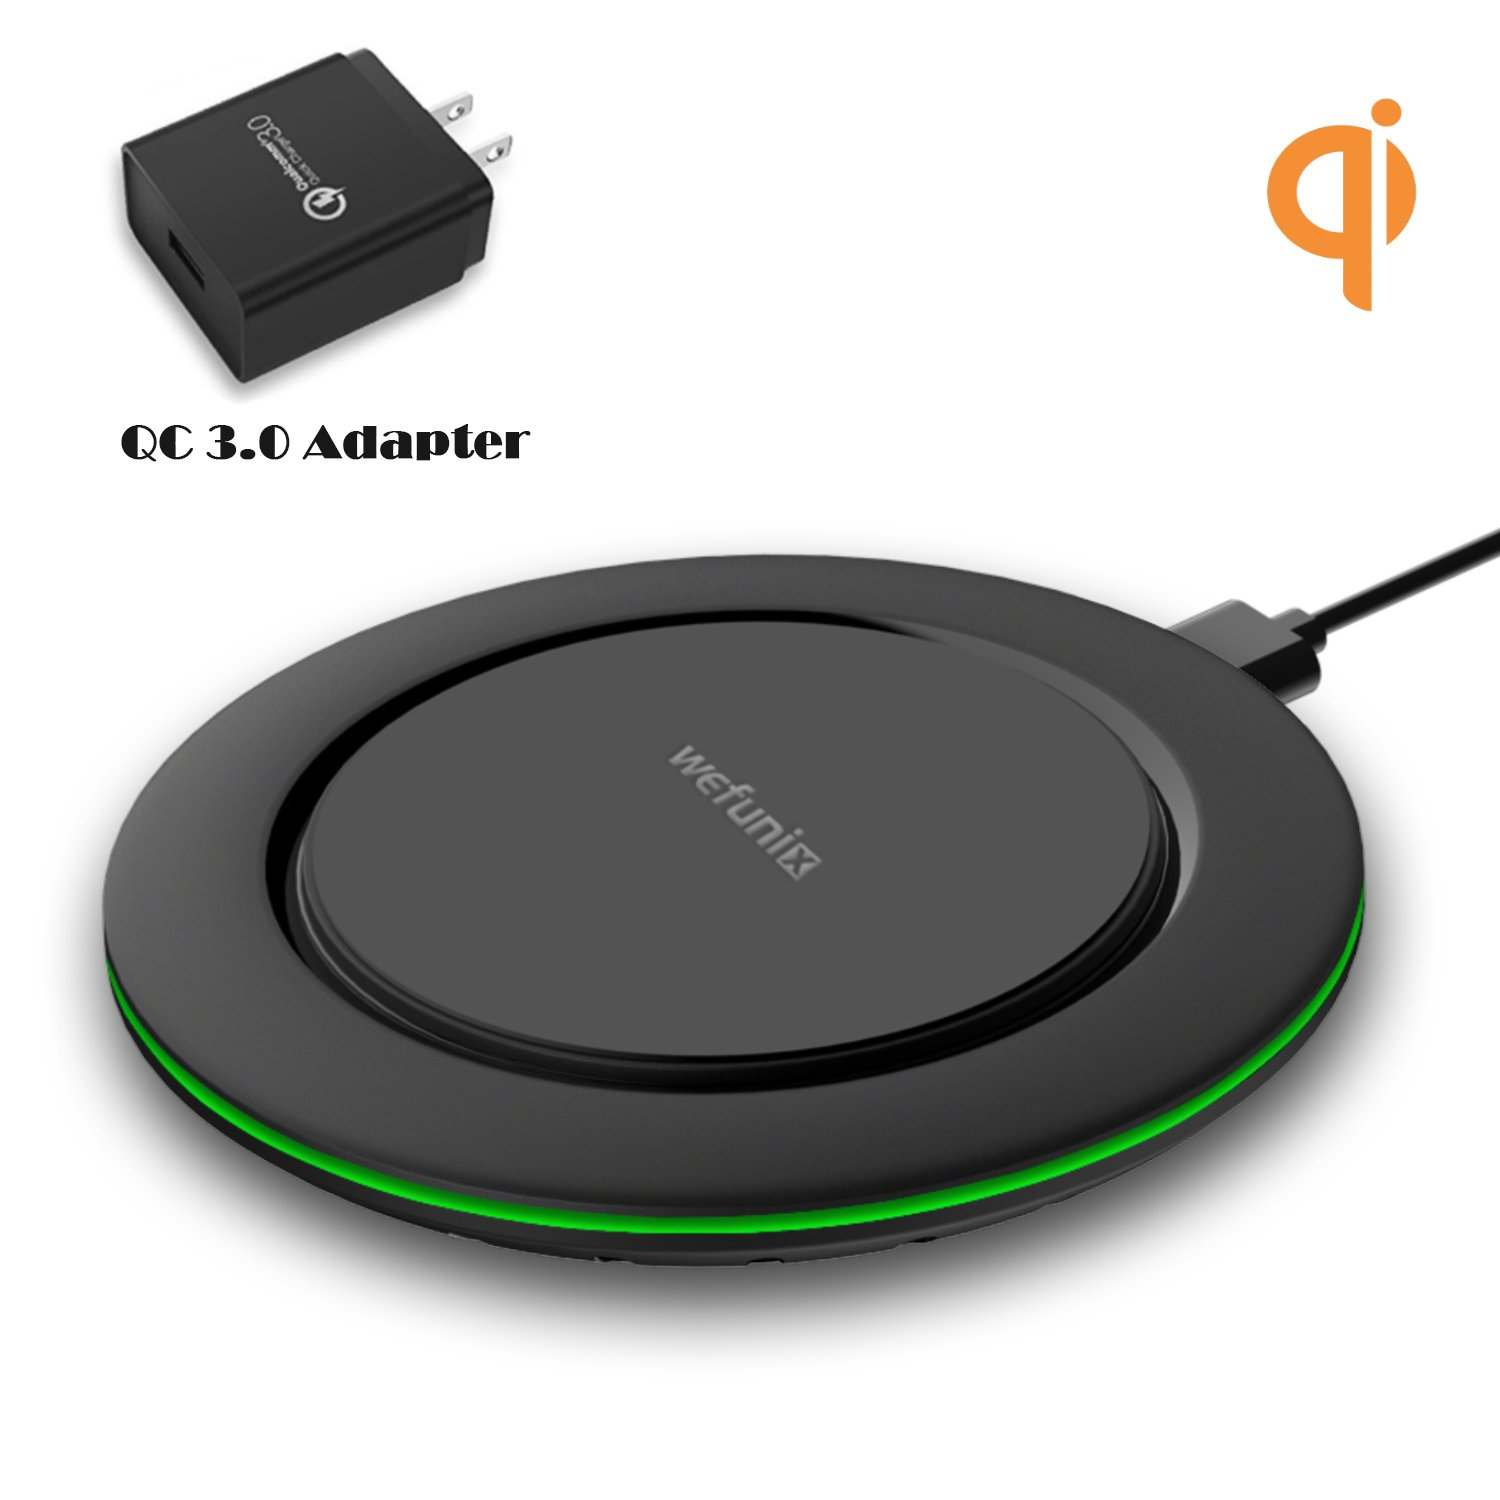 10W Fast Wireless Charger for Samsung Galaxy S9 S9Plus Note 8/5 S8 S8Plus S7 S7Edge S6Edge Plus- Wefunix Qi Certified 7.5W Fast Wireless Charging Pad for iPhone X 8 8Plus- QC3.0 AC Adapter Included WFX-531